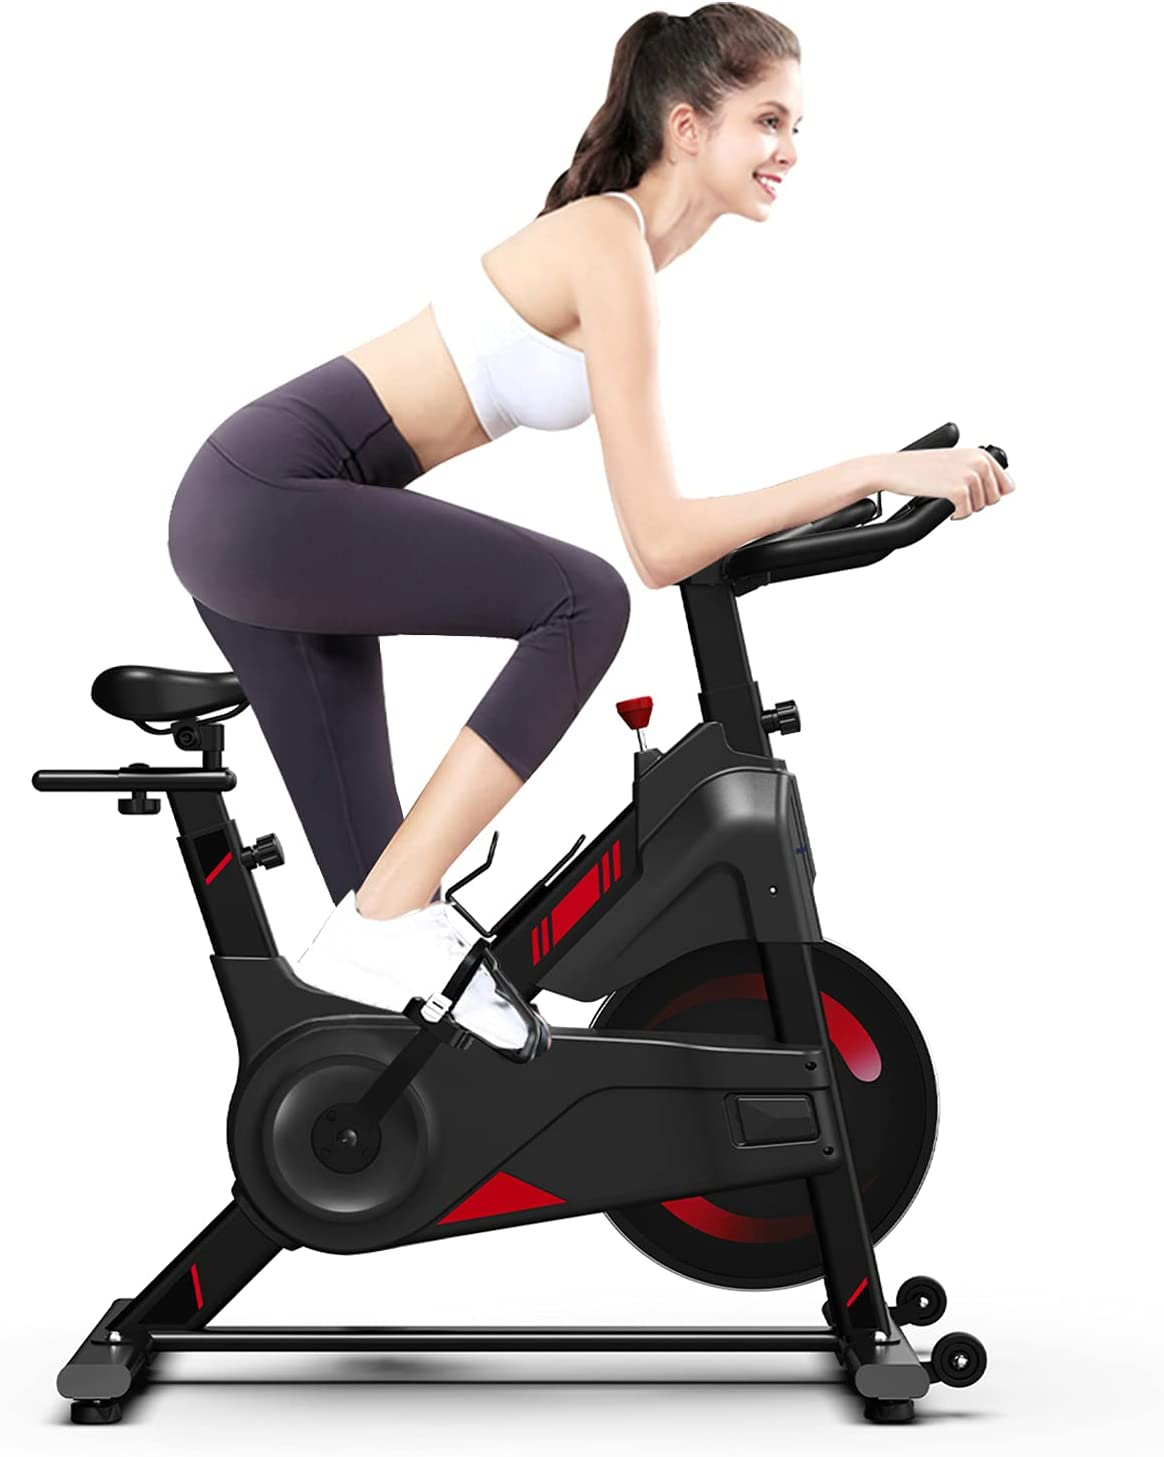 OUNUO Magnetic Resistance Exercise Bike Versi 1 year warranty online shop Upgraded 2021 New